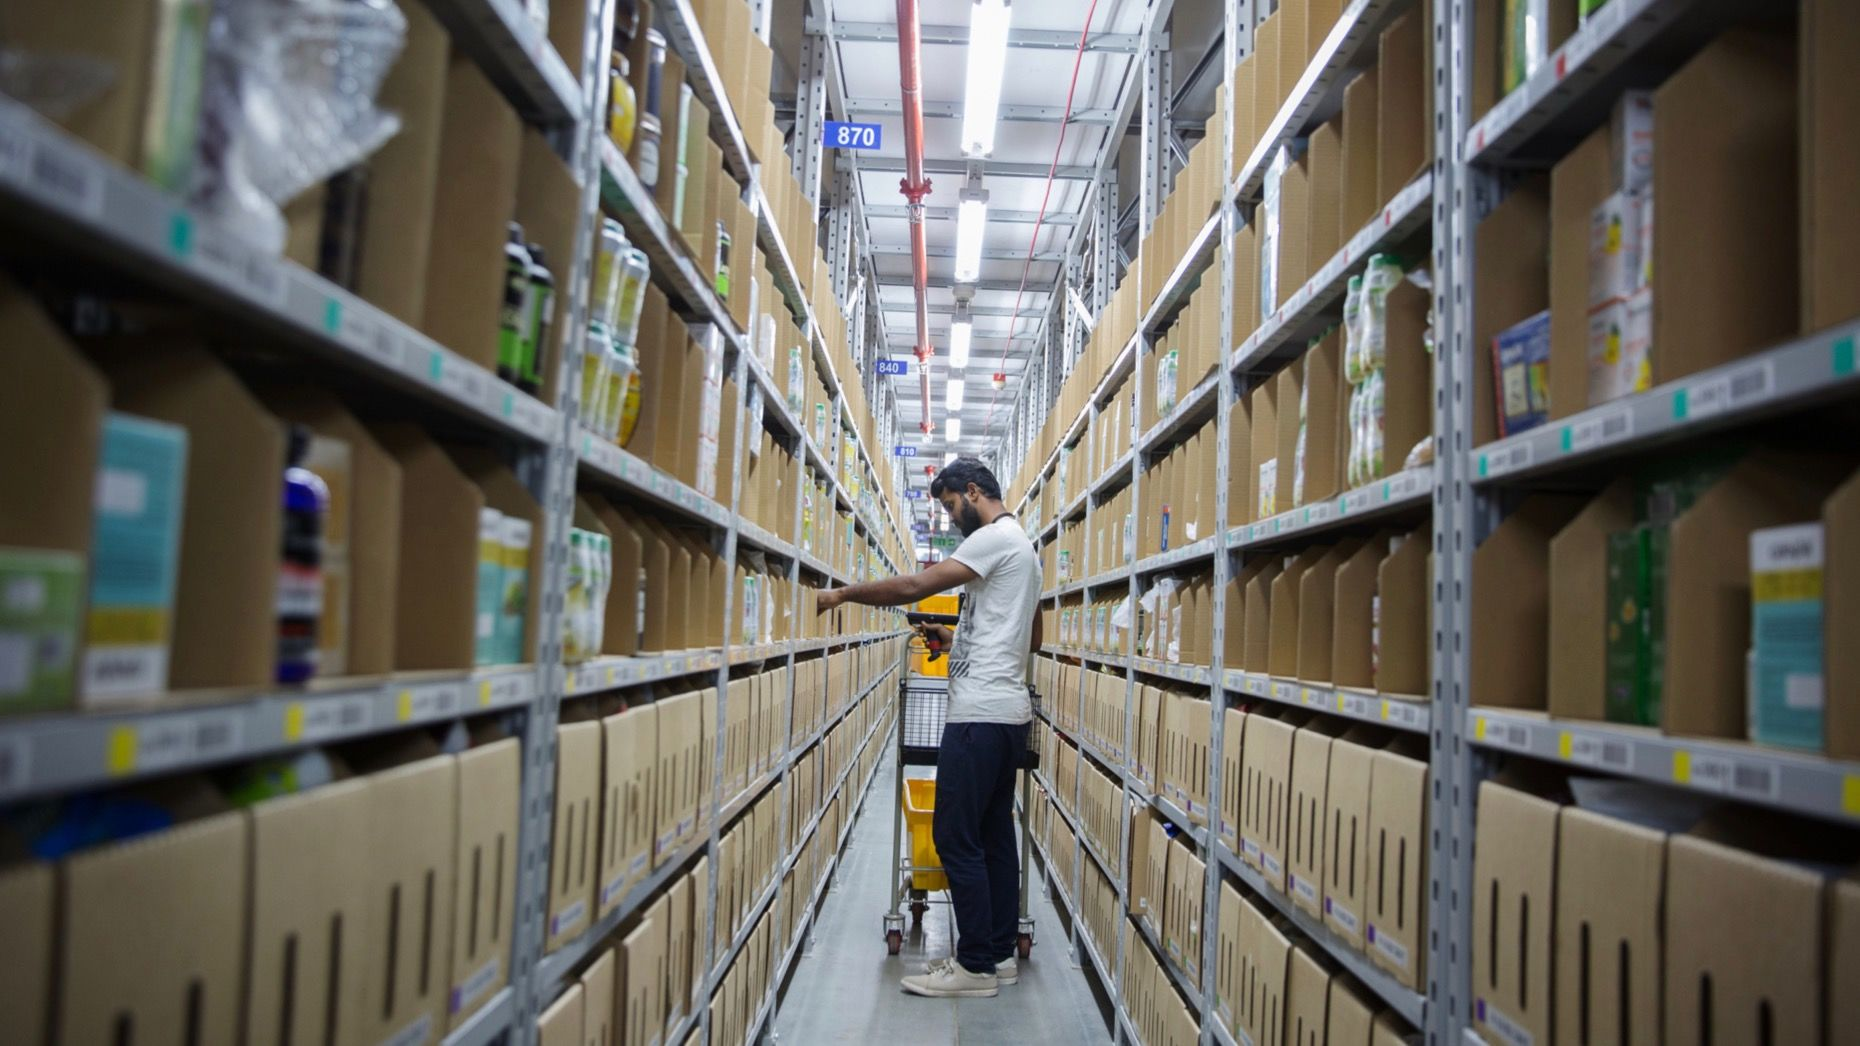 An employee worked at an Amazon warehouse in Bangalore, India, in 2018. Photo: Bloomberg